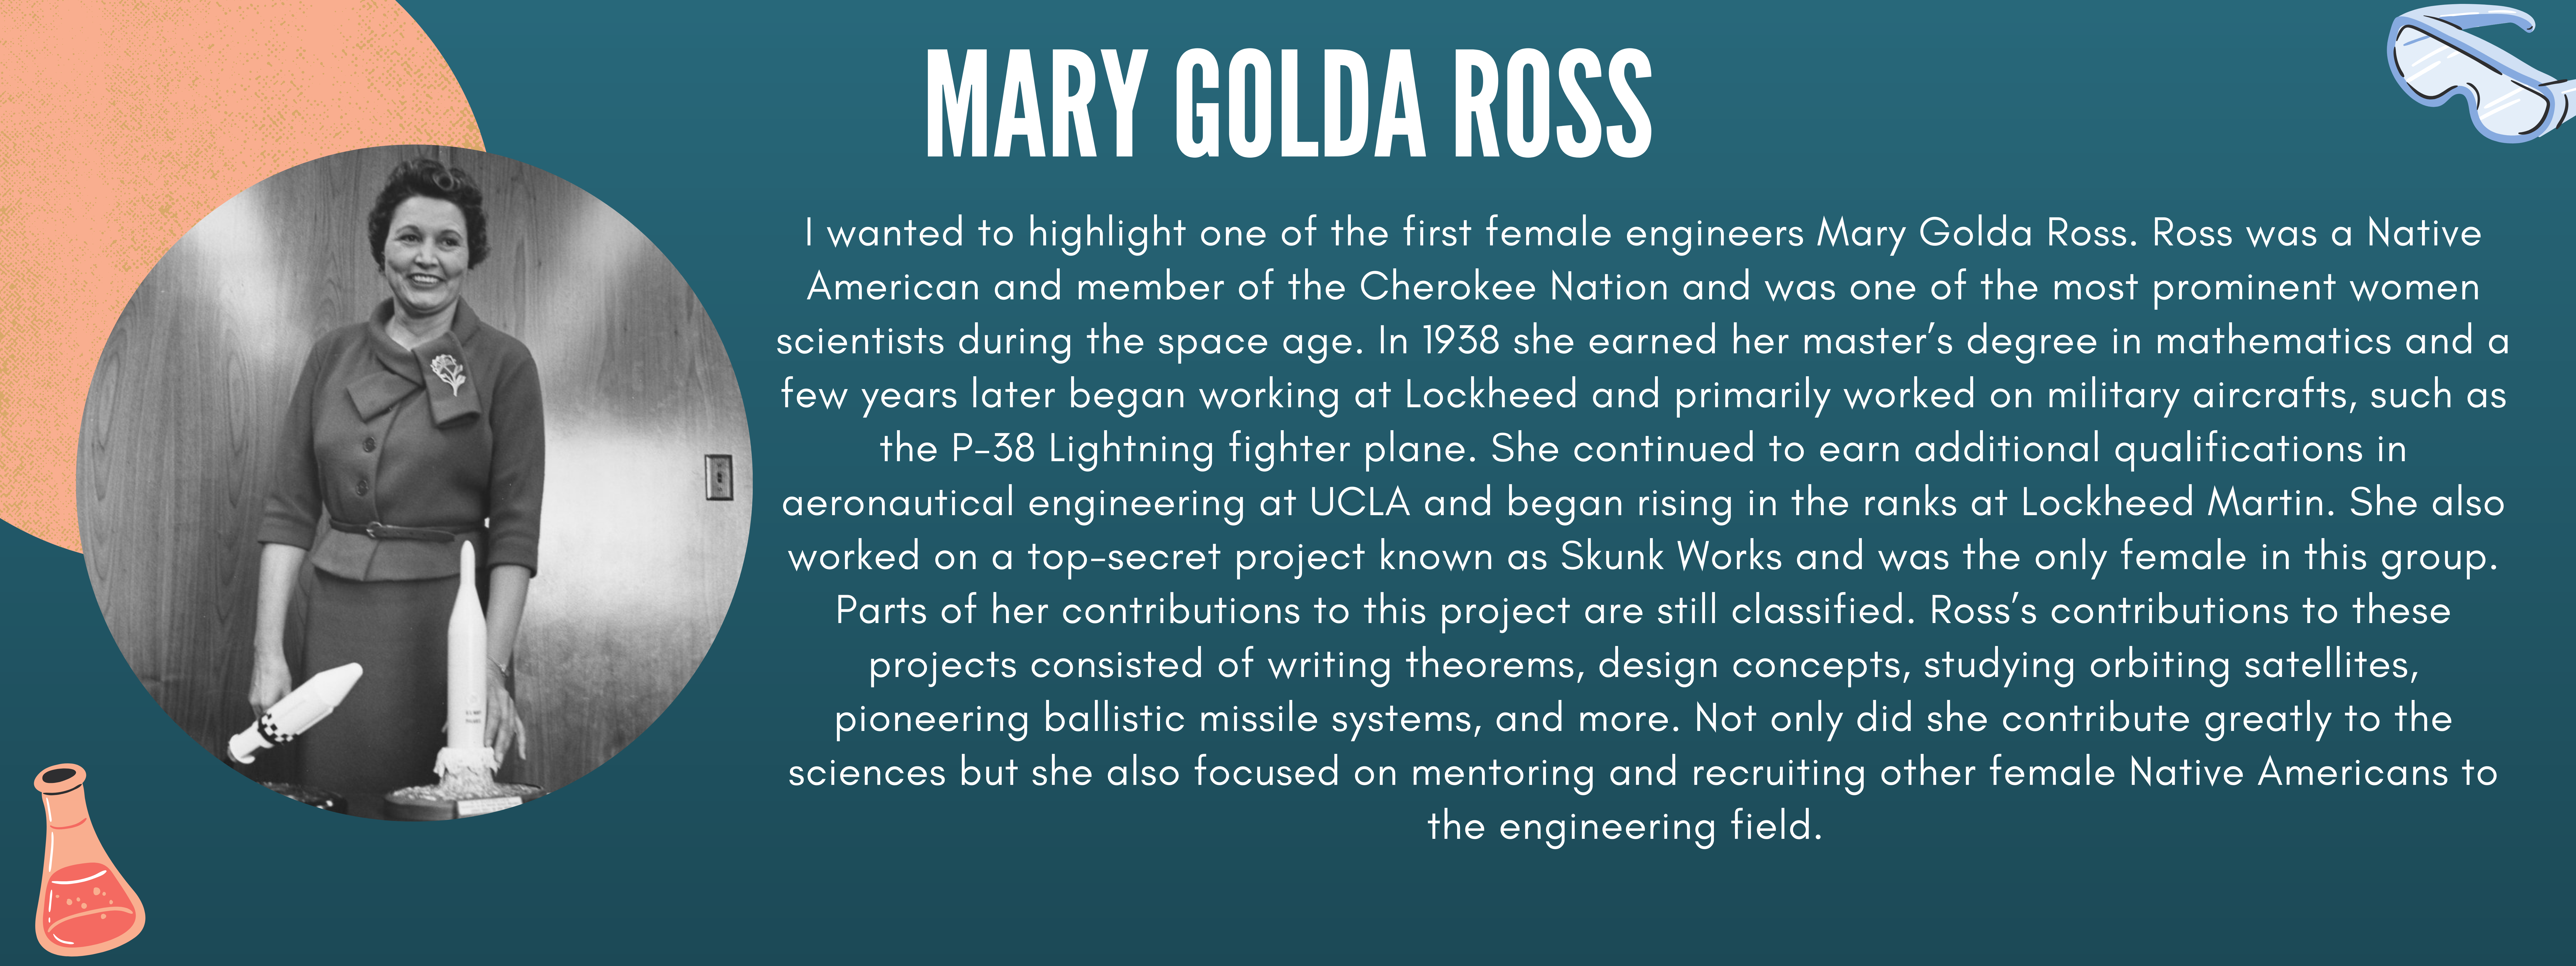 This week I wanted to highlight one of the first female engineers Mary Golda Ross. Ross was a Native American and member of the Cherokee Nation and was one of the most prominent women scientists during the space age. In 1938 she earned her master's degree in mathematics and a few years later began working at Lockheed and primarily worked on military aircrafts, such as the P-38 Lightning fighter plane. She continued to earn additional qualifications in aeronautical engineering at UCLA and began rising in the ranks at Lockheed Martin. She also worked on a top-secret project known as Skunk Works and was the only female in this group. Parts of her contributions to this project are still classified. Ross's contributions to these projects consisted of writing theorems, design concepts, studying orbiting satellites, pioneering ballistic missile systems, and more. Not only did she contribute greatly to the sciences but she also focused on mentoring and recruiting other female Native Americans to the engineering field.